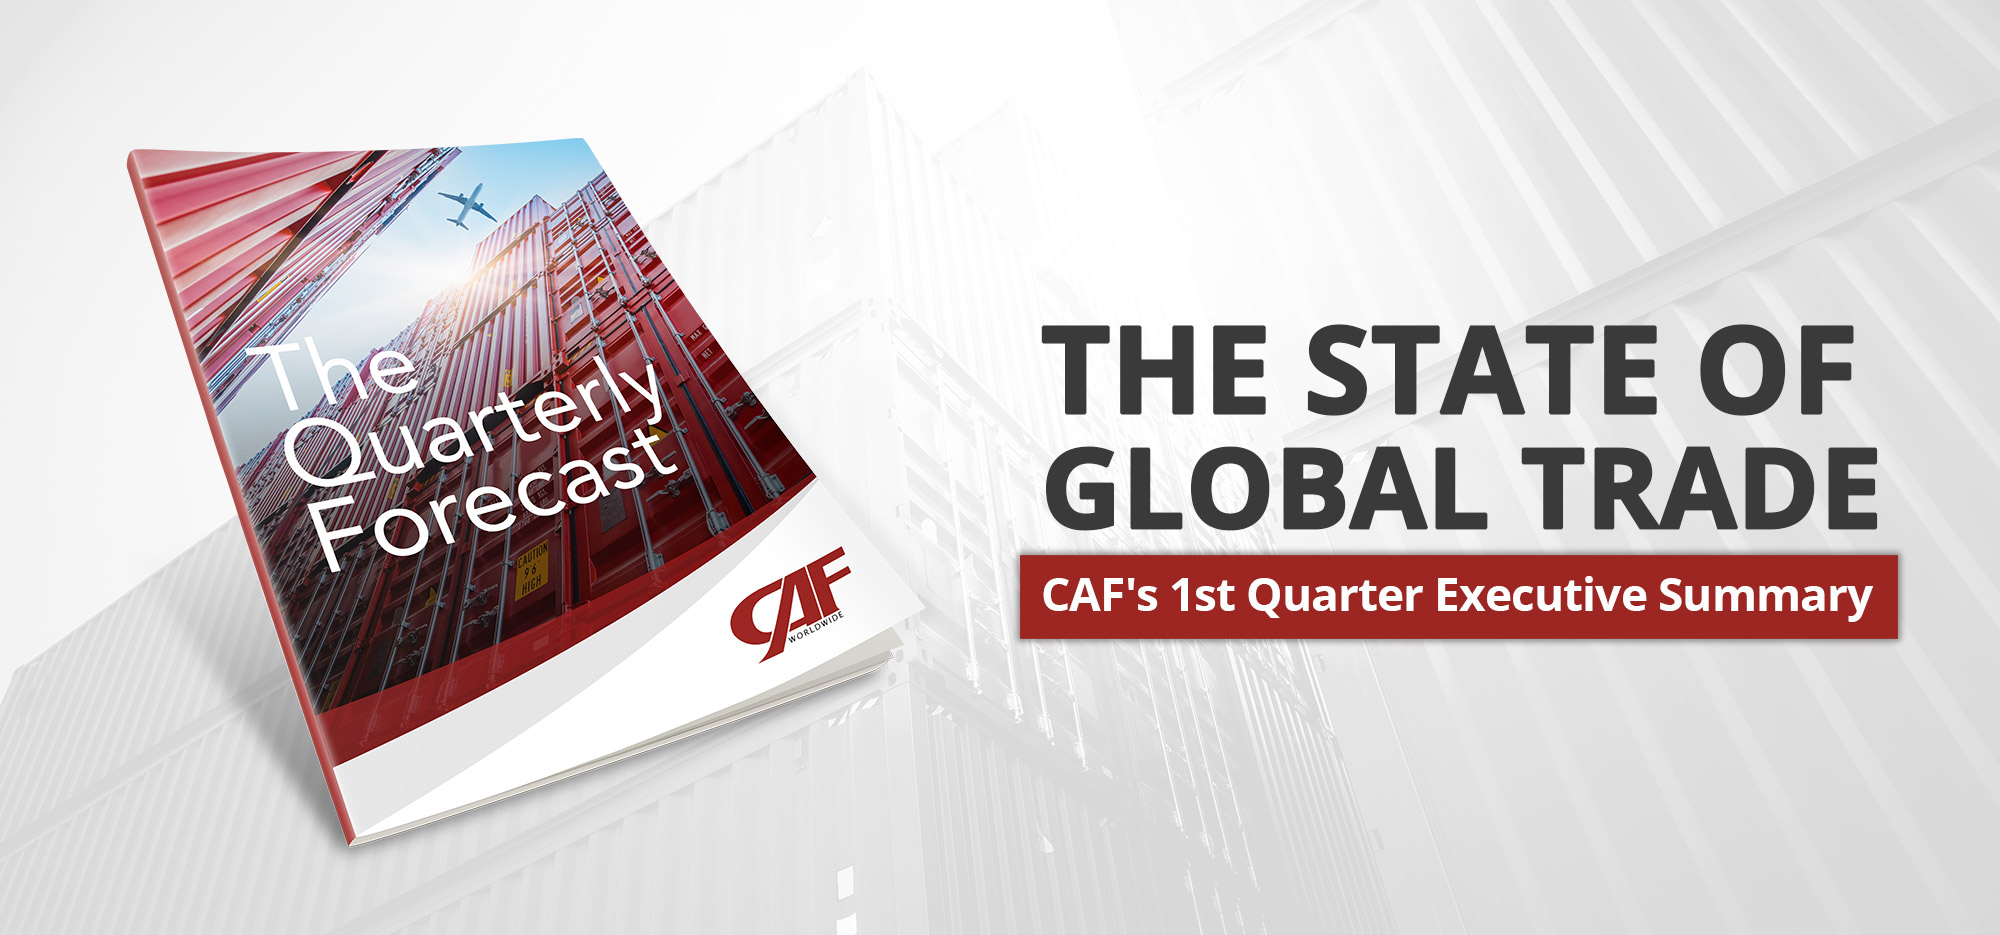 The State of Global Trade: CAF's 1st Quarter Executive Summary